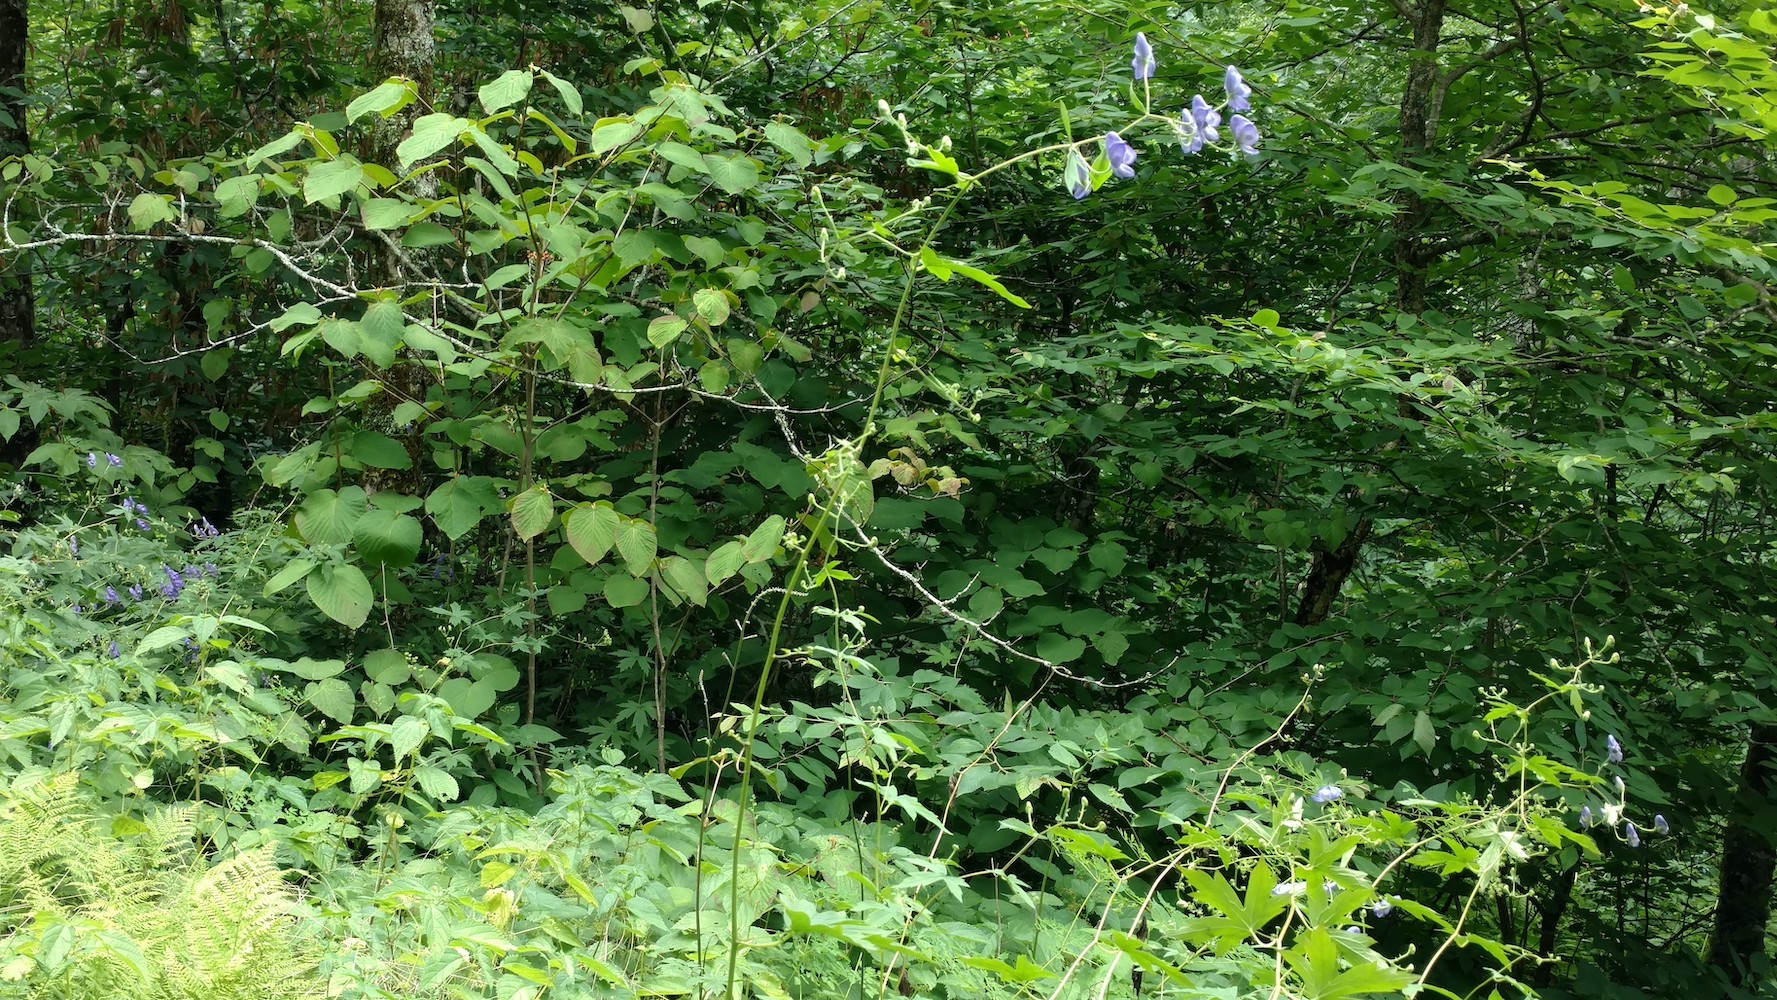 The Scientific Name is Aconitum uncinatum. You will likely hear them called Southern Blue Monkshood, Eastern Blue Monkshood, Appalachian Blue Monkshood. This picture shows the Notice long flexuous stems arising above other vegetation of Aconitum uncinatum